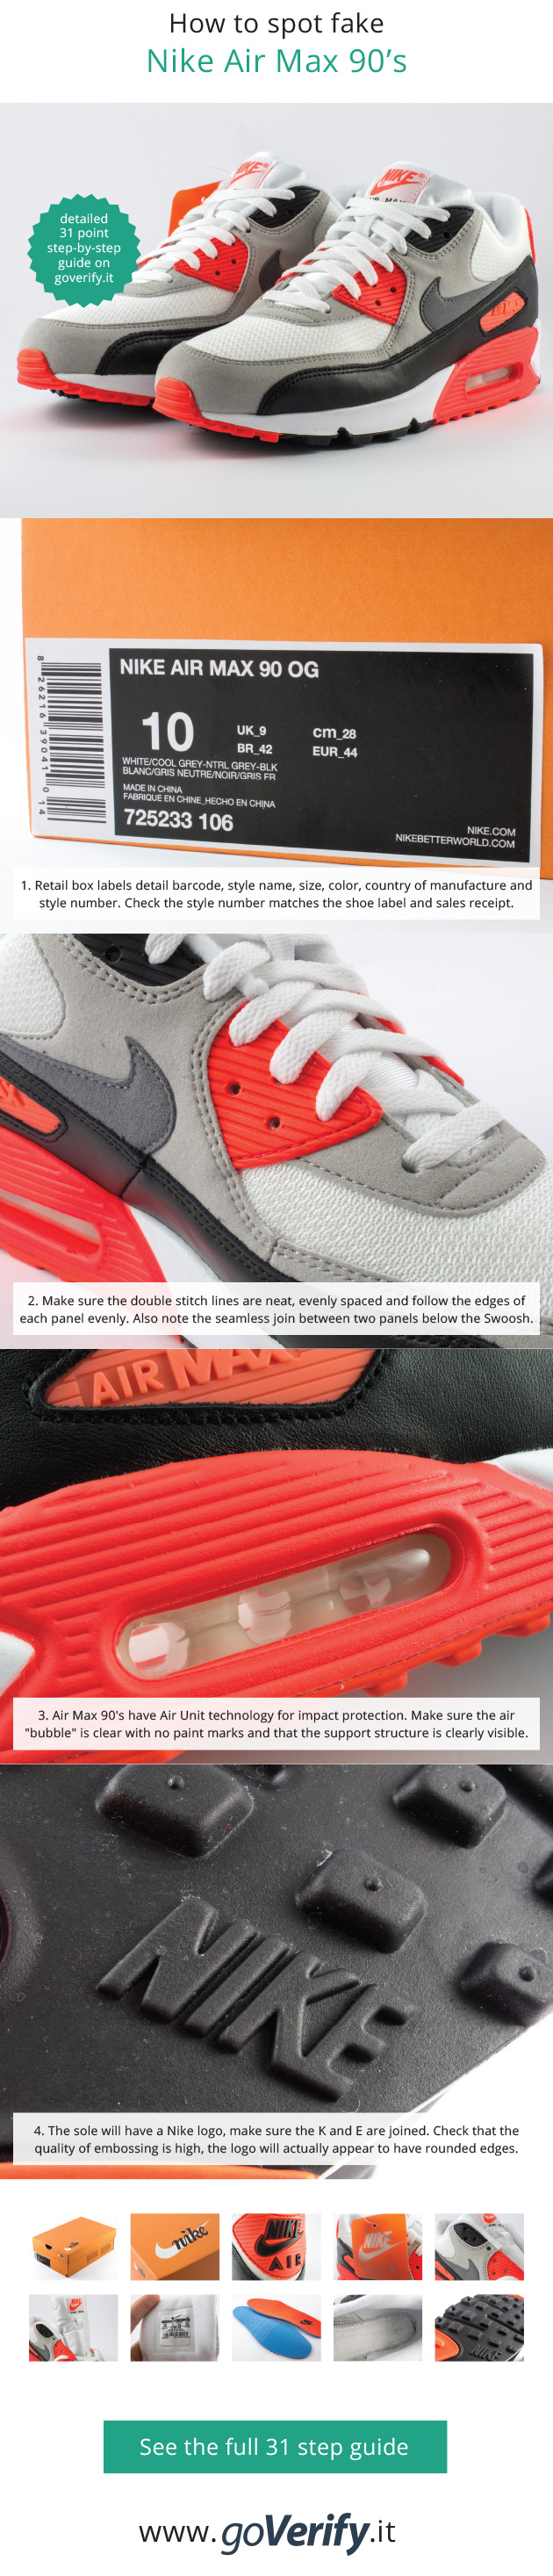 watch 287f7 515f7 How to spot fake Nike Air Max 90 OG s, go to www.goverify.it for a full 31  point step-by-step guide.